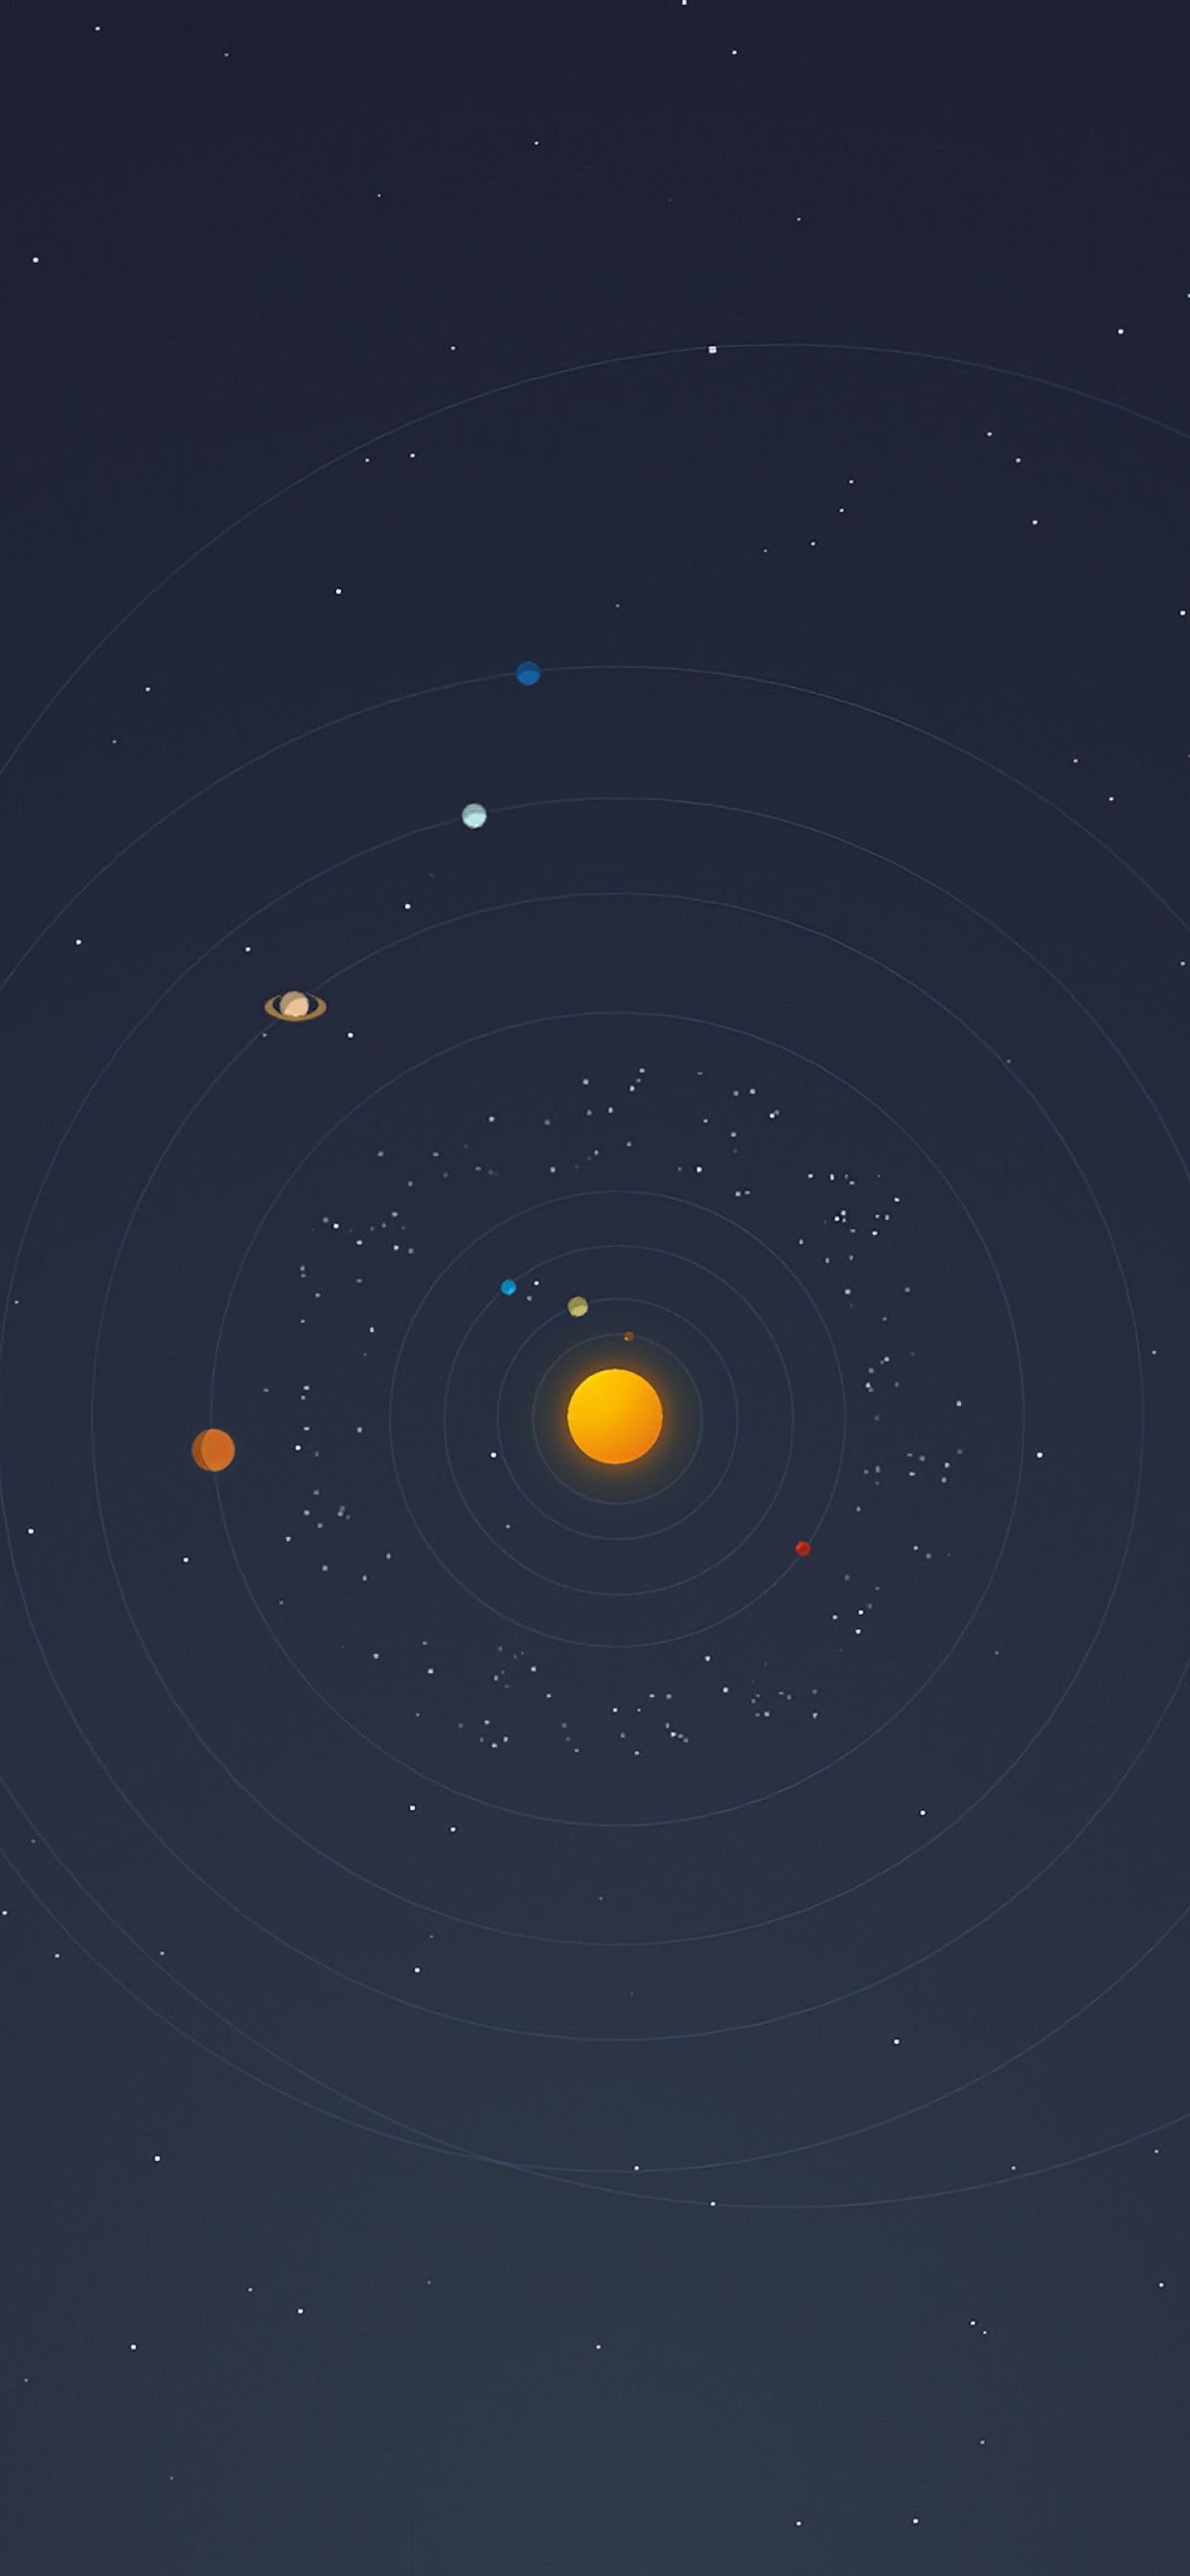 Space Minimalist Wallpaper : space, minimalist, wallpaper, Minimalism, Universe, Wallpapers, Backgrounds, WallpaperAccess